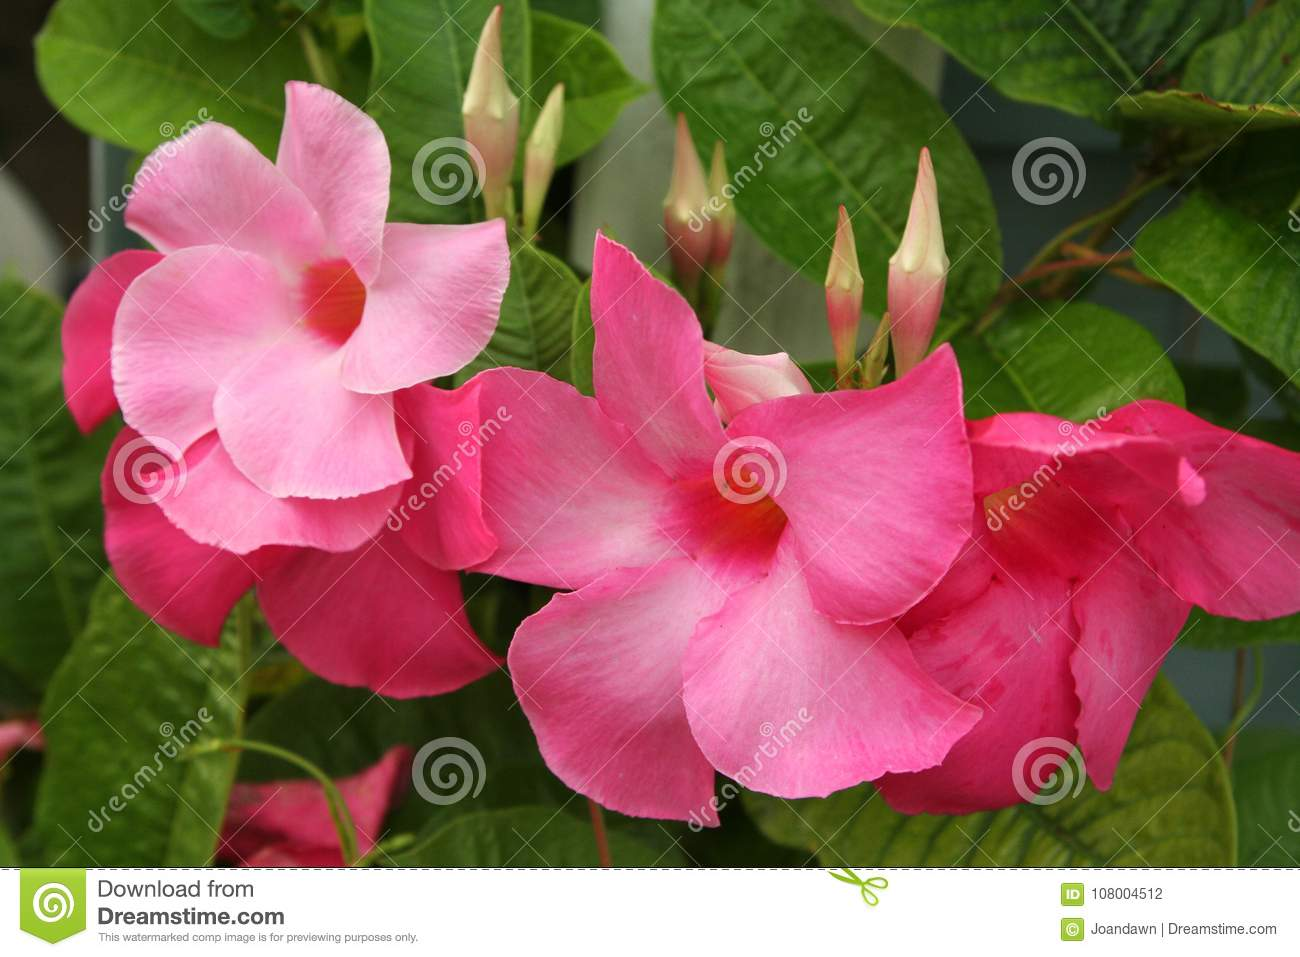 Hot Pink Mandevilla Blossoms And Bud Bloom On Strong Green Leafed